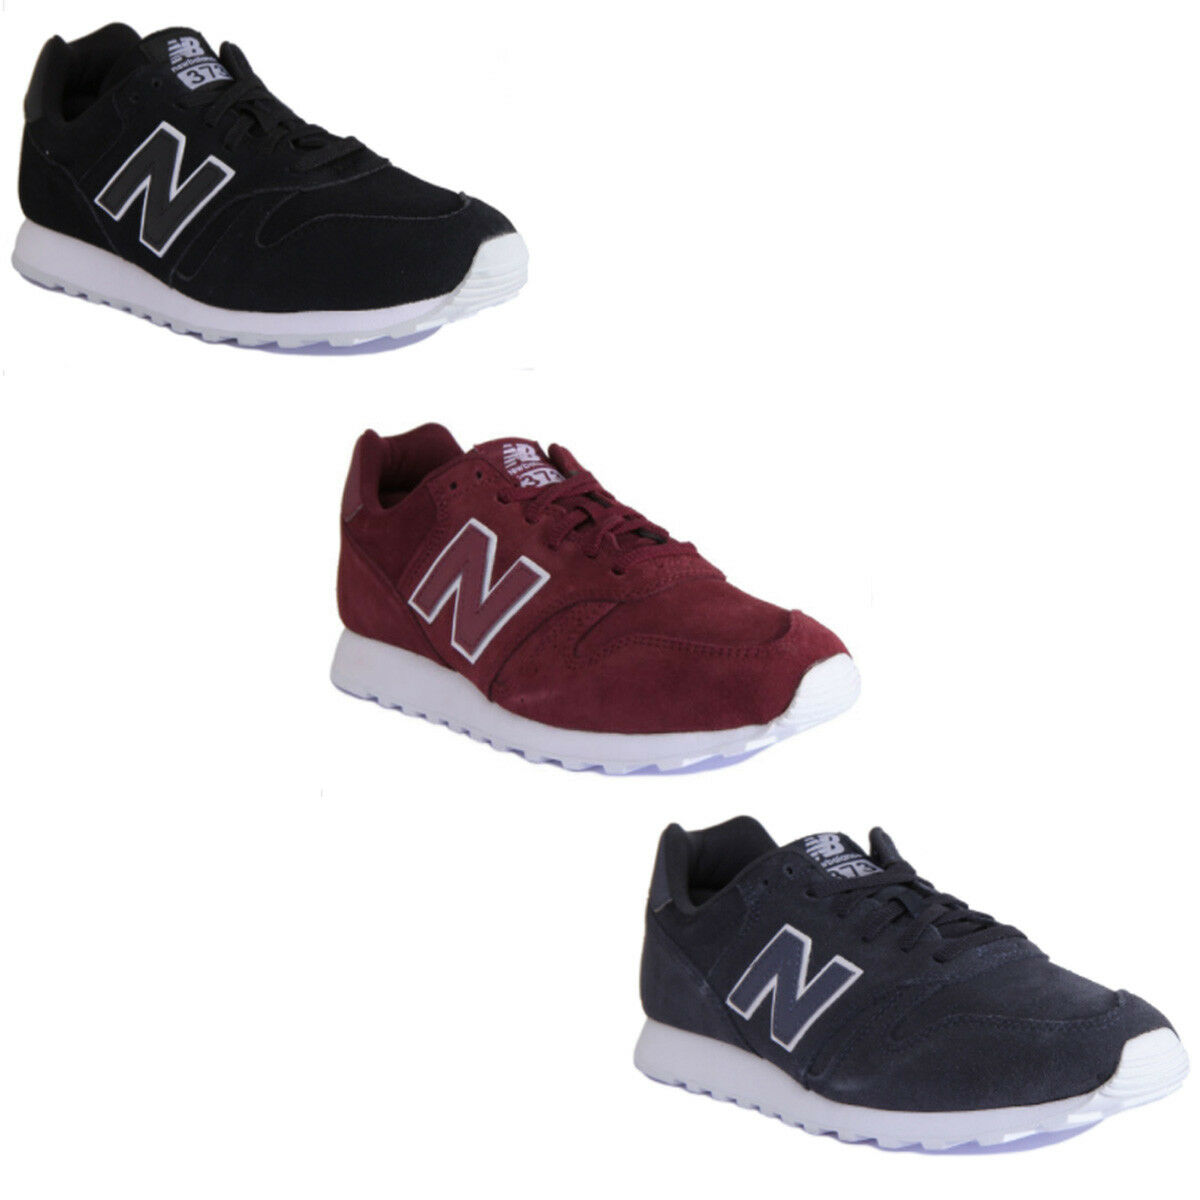 New Balance MI373TN Modern Classic Men Suede Leather Black White Trainers 7-12.5